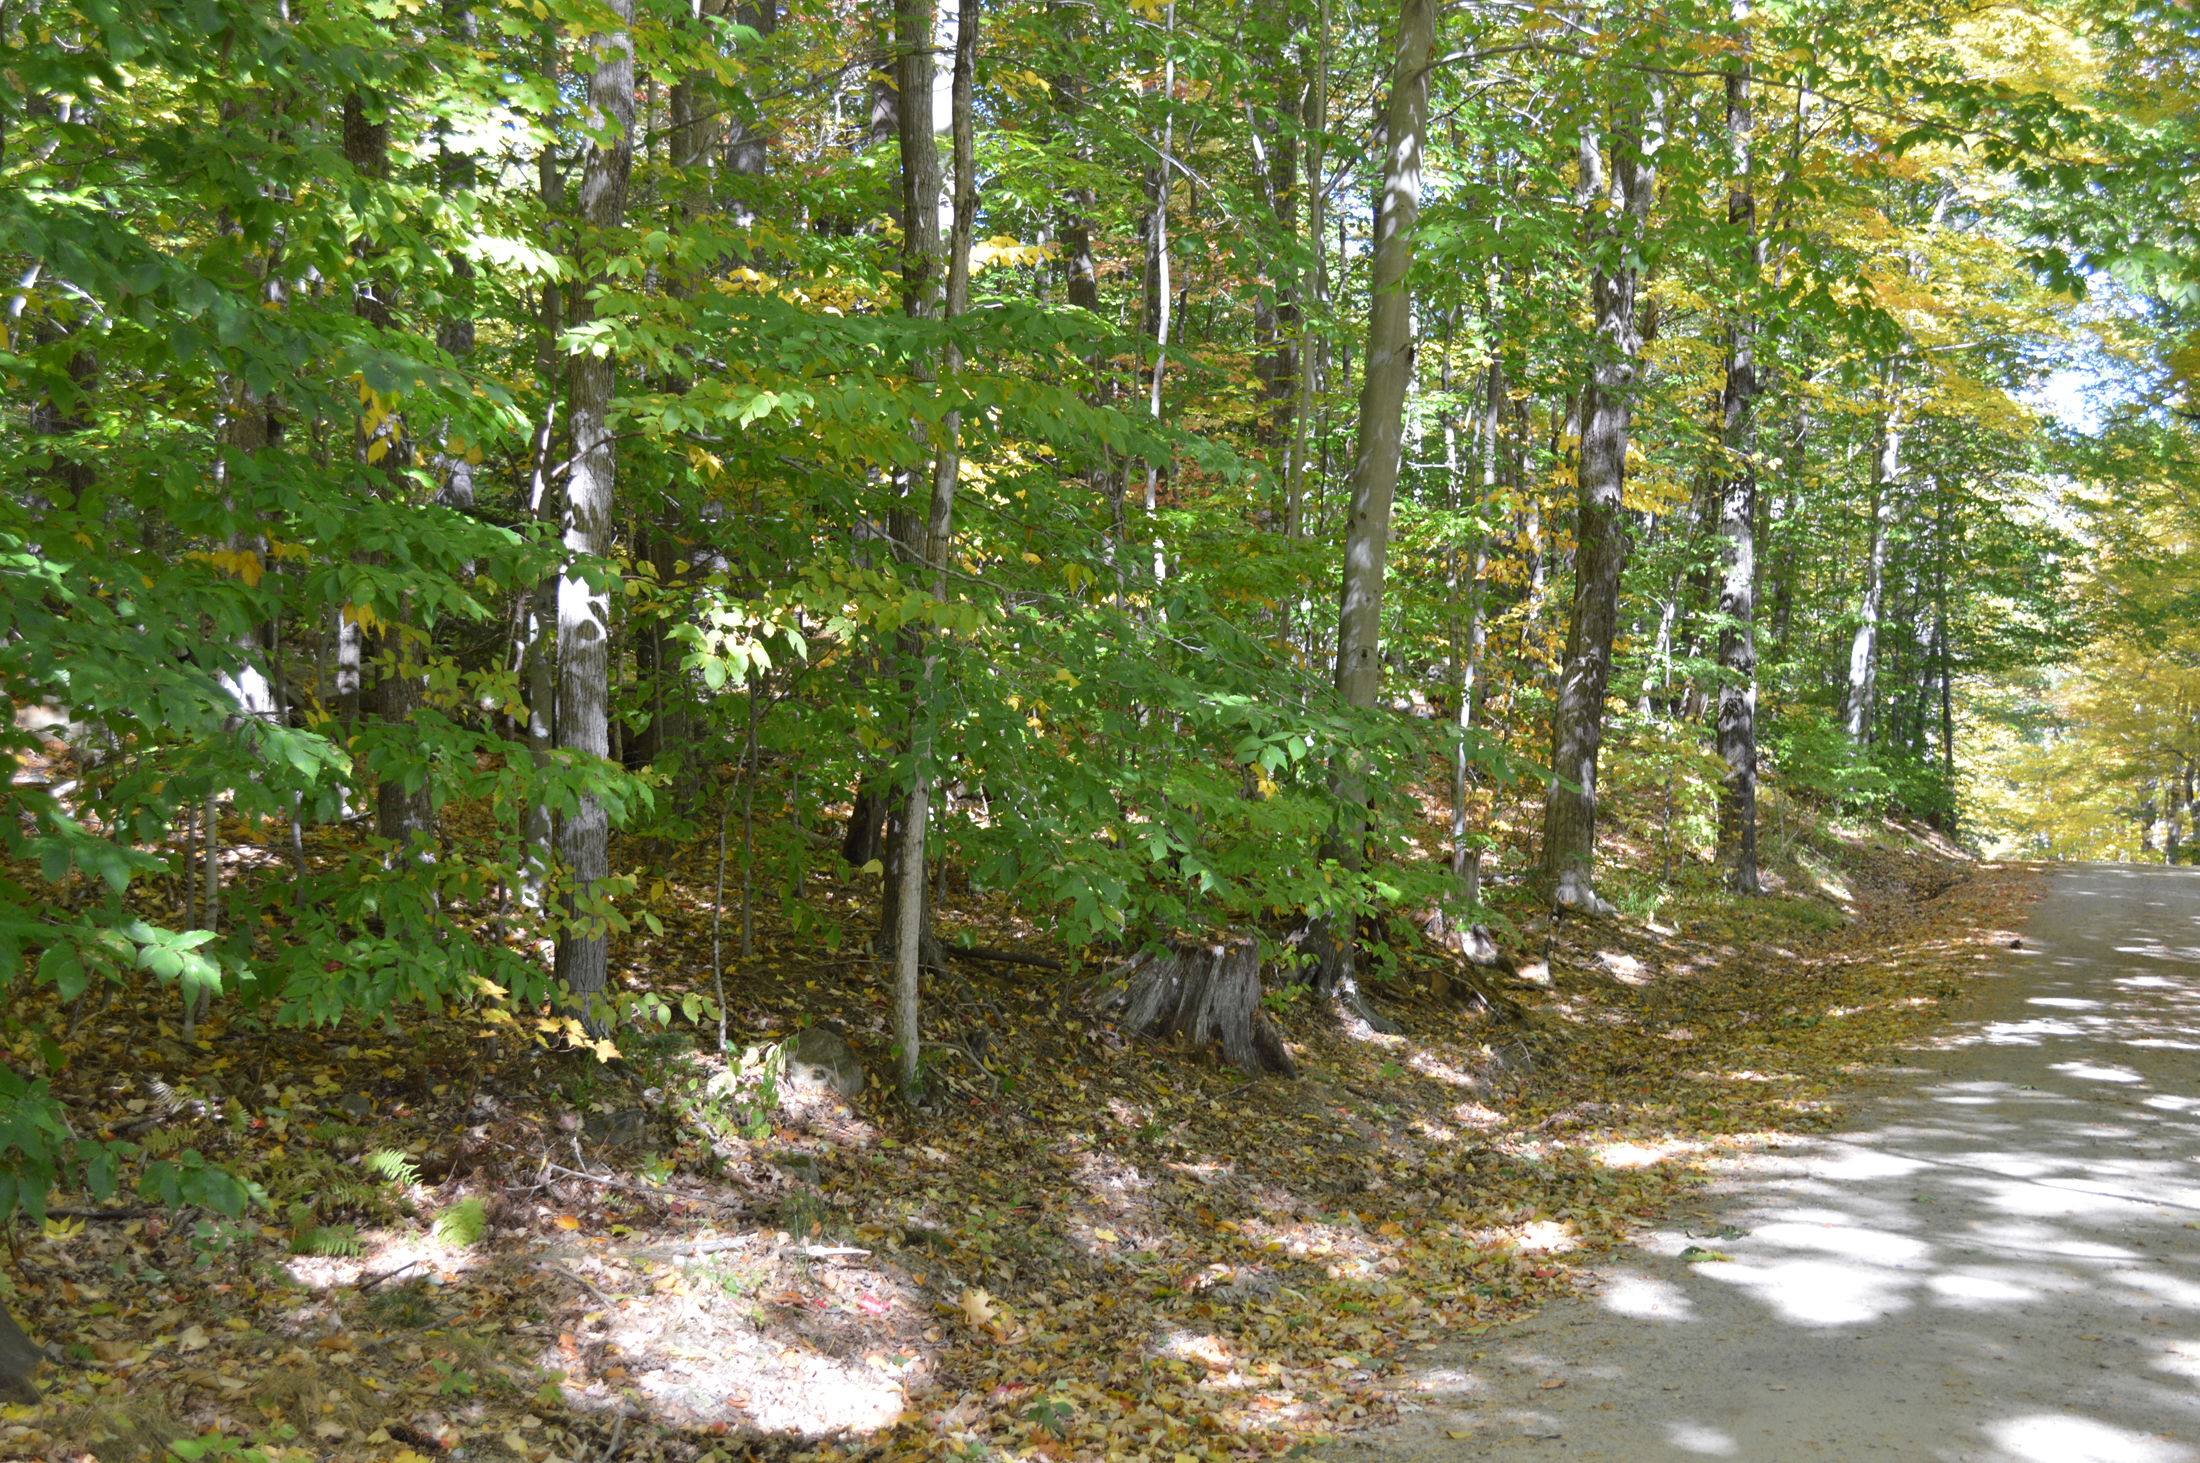 Land for Sale at Lot 0 True Farm Road, Holderness Lot 0 True Farm Rd Holderness, New Hampshire, 03245 United States